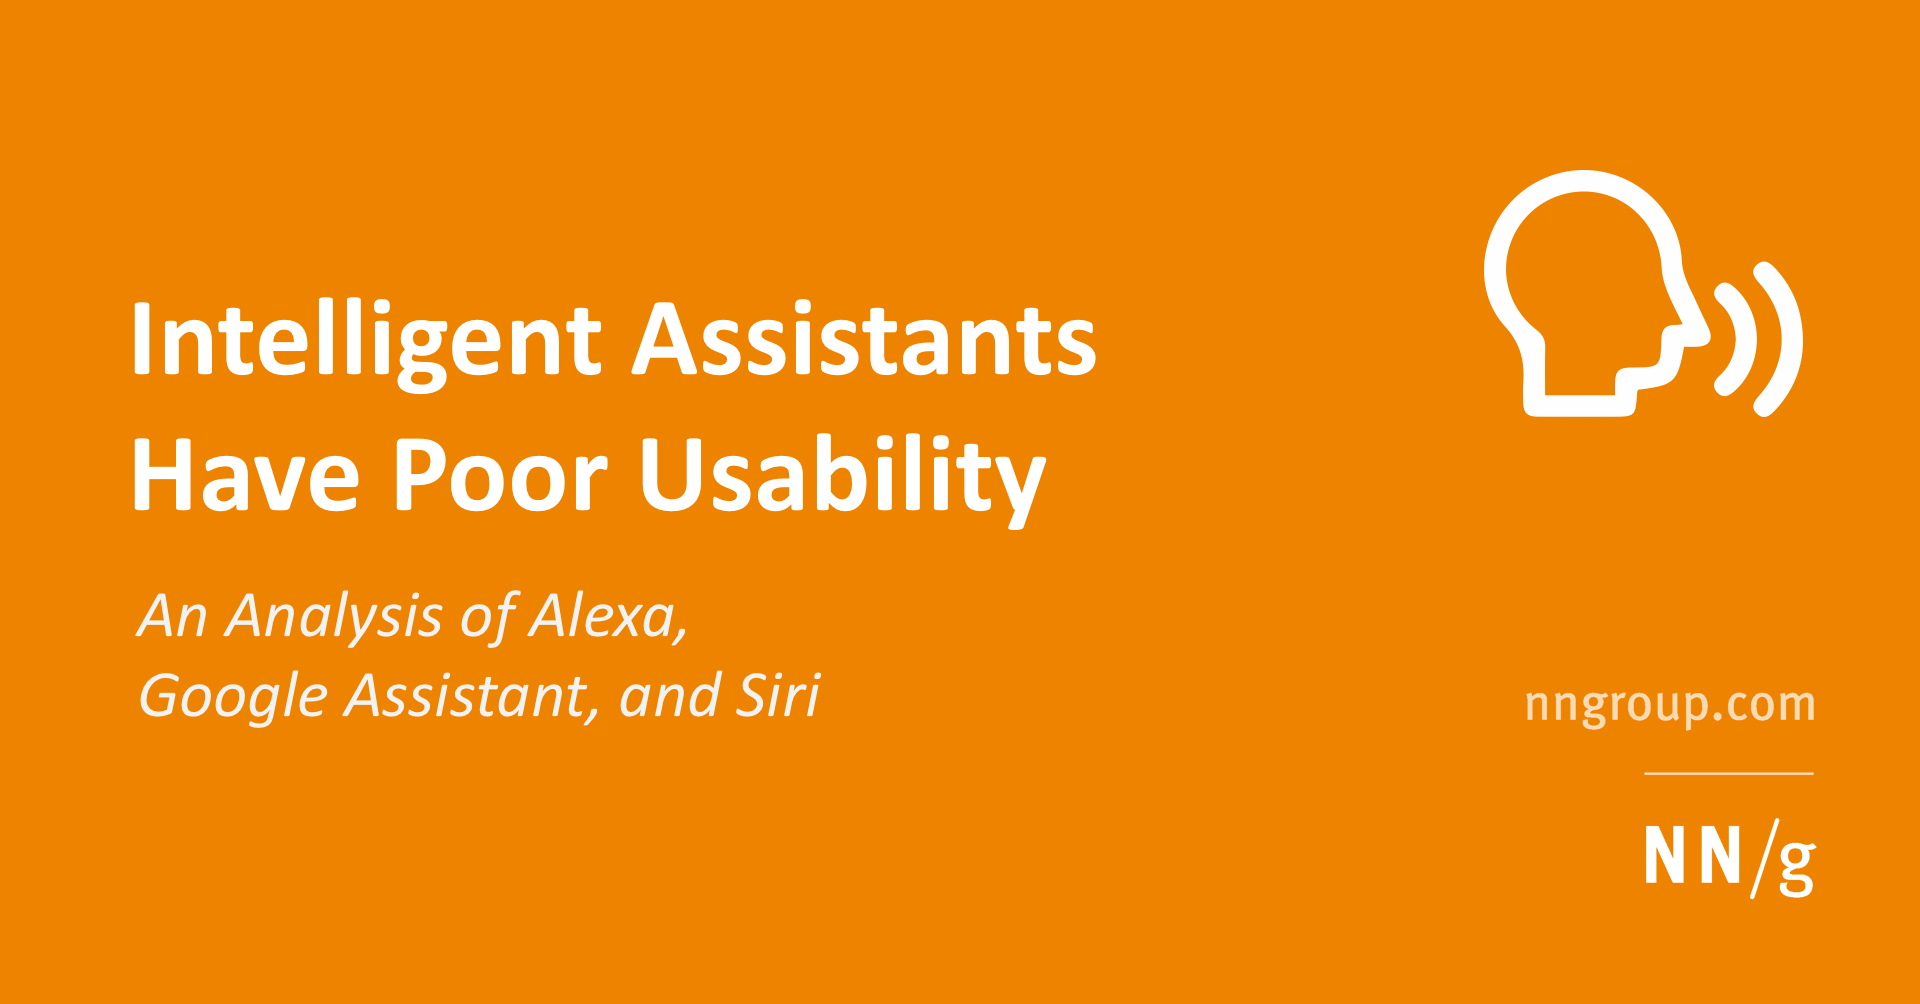 https://www.nngroup.com/articles/intelligent-assistant-usability/